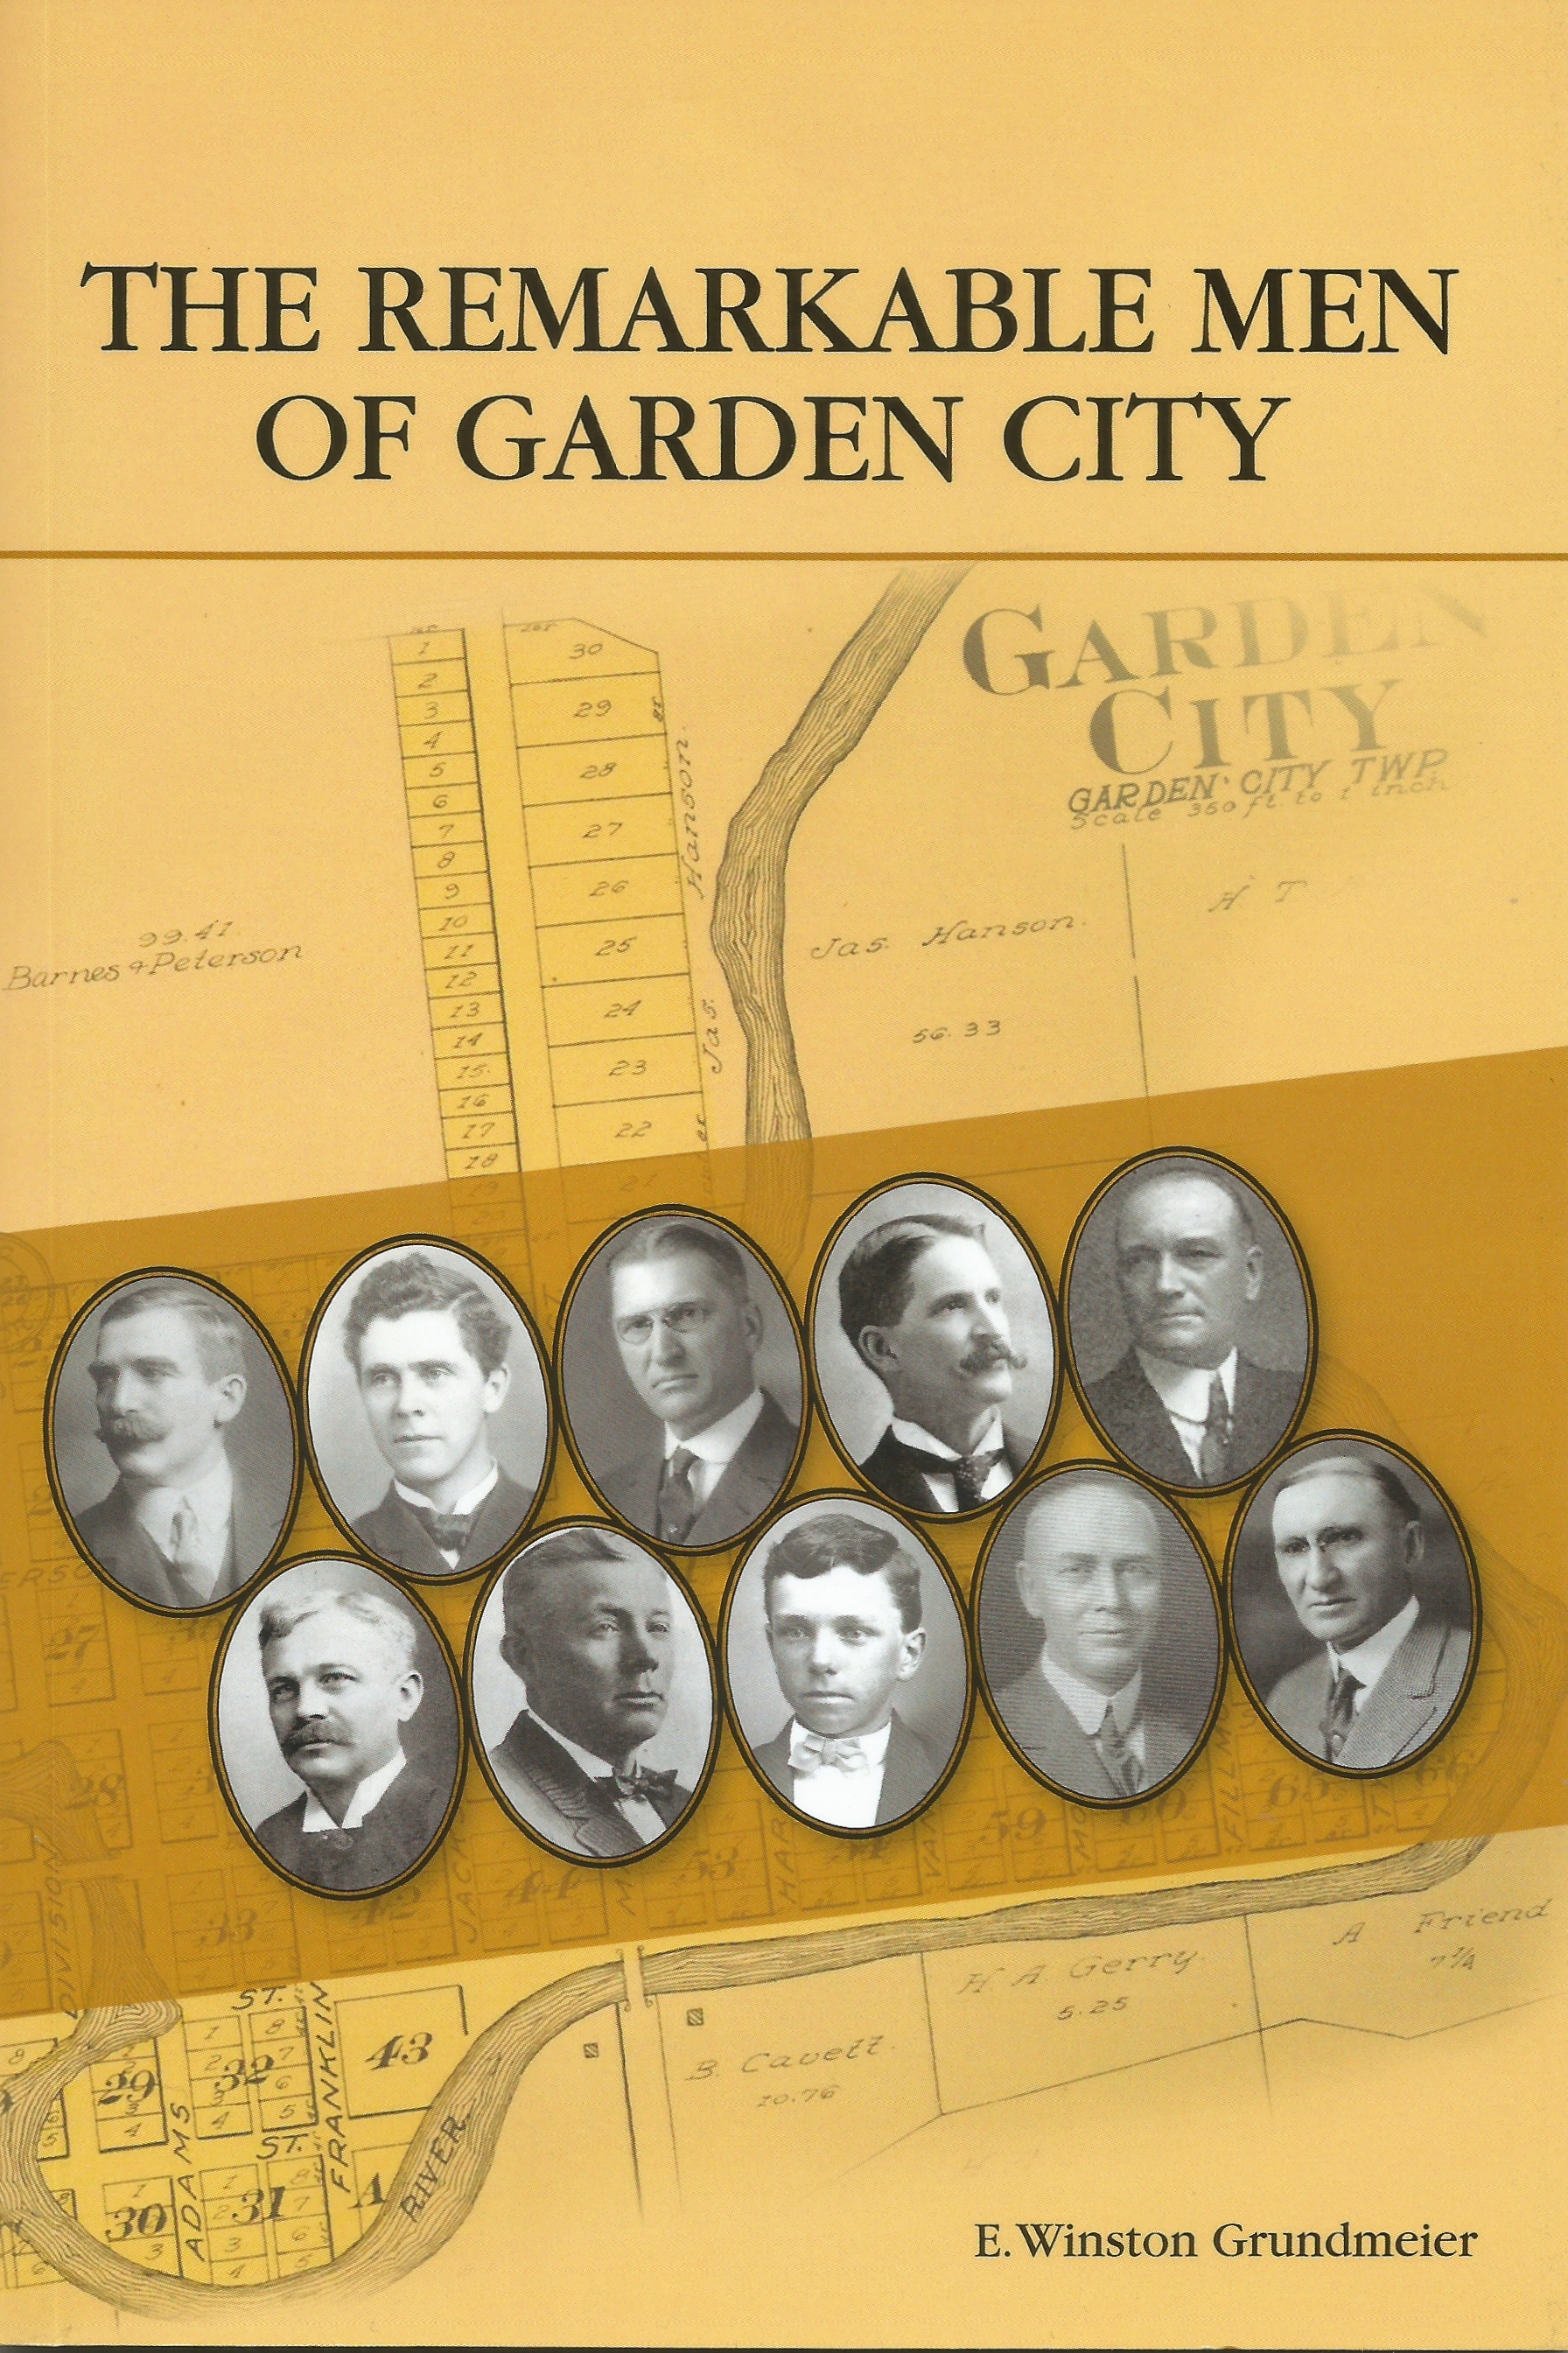 The Remarkable Men of Garden City